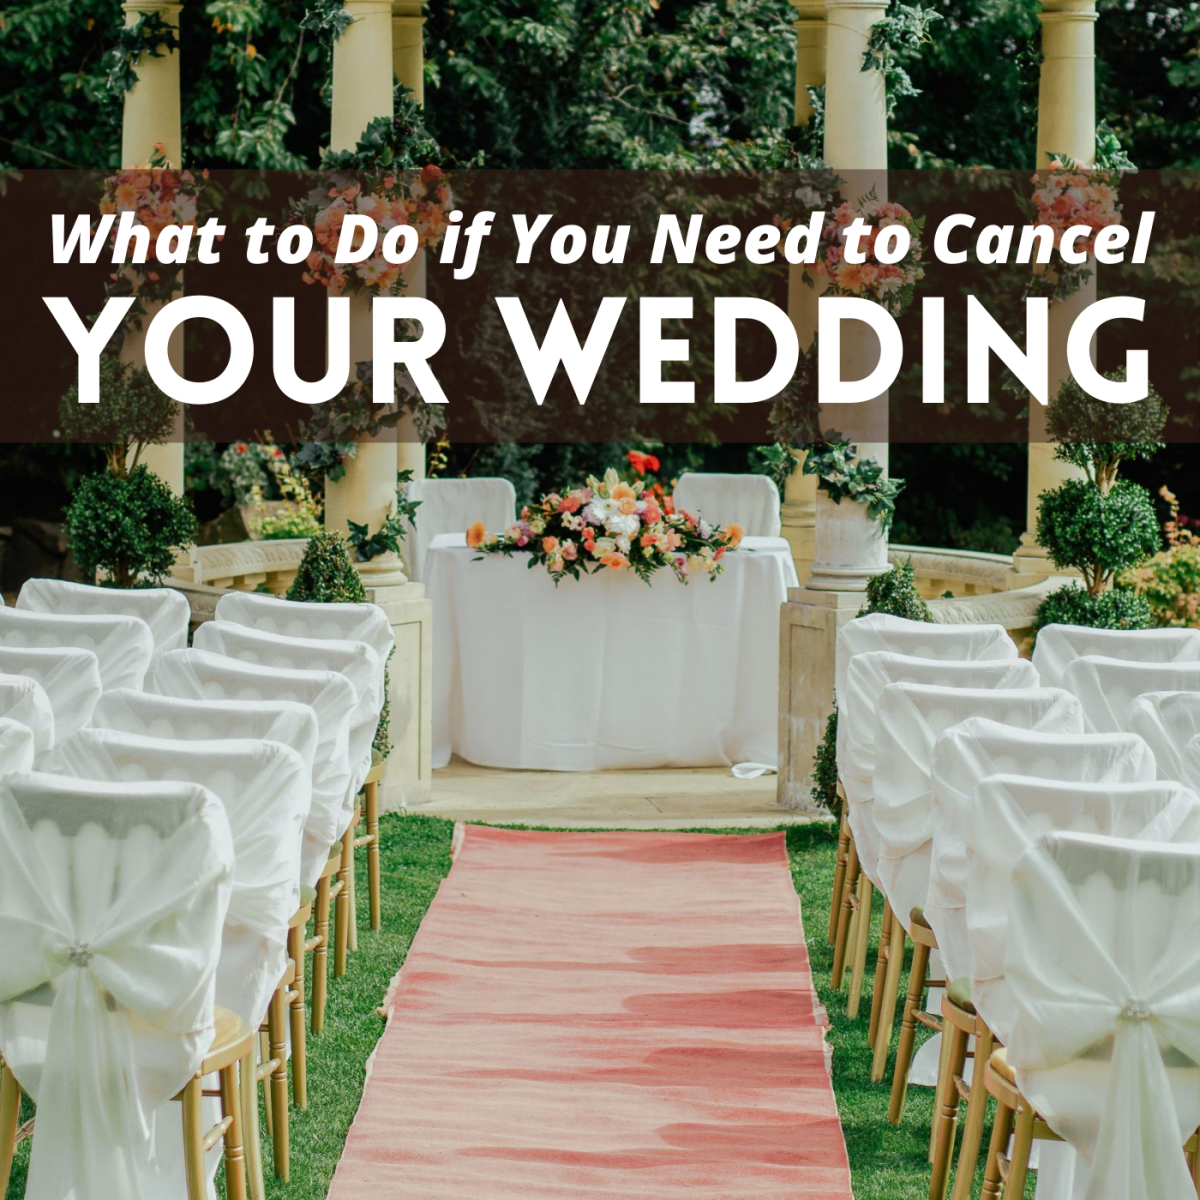 Considering Canceling Your Wedding for Financial Reasons? 3 Options